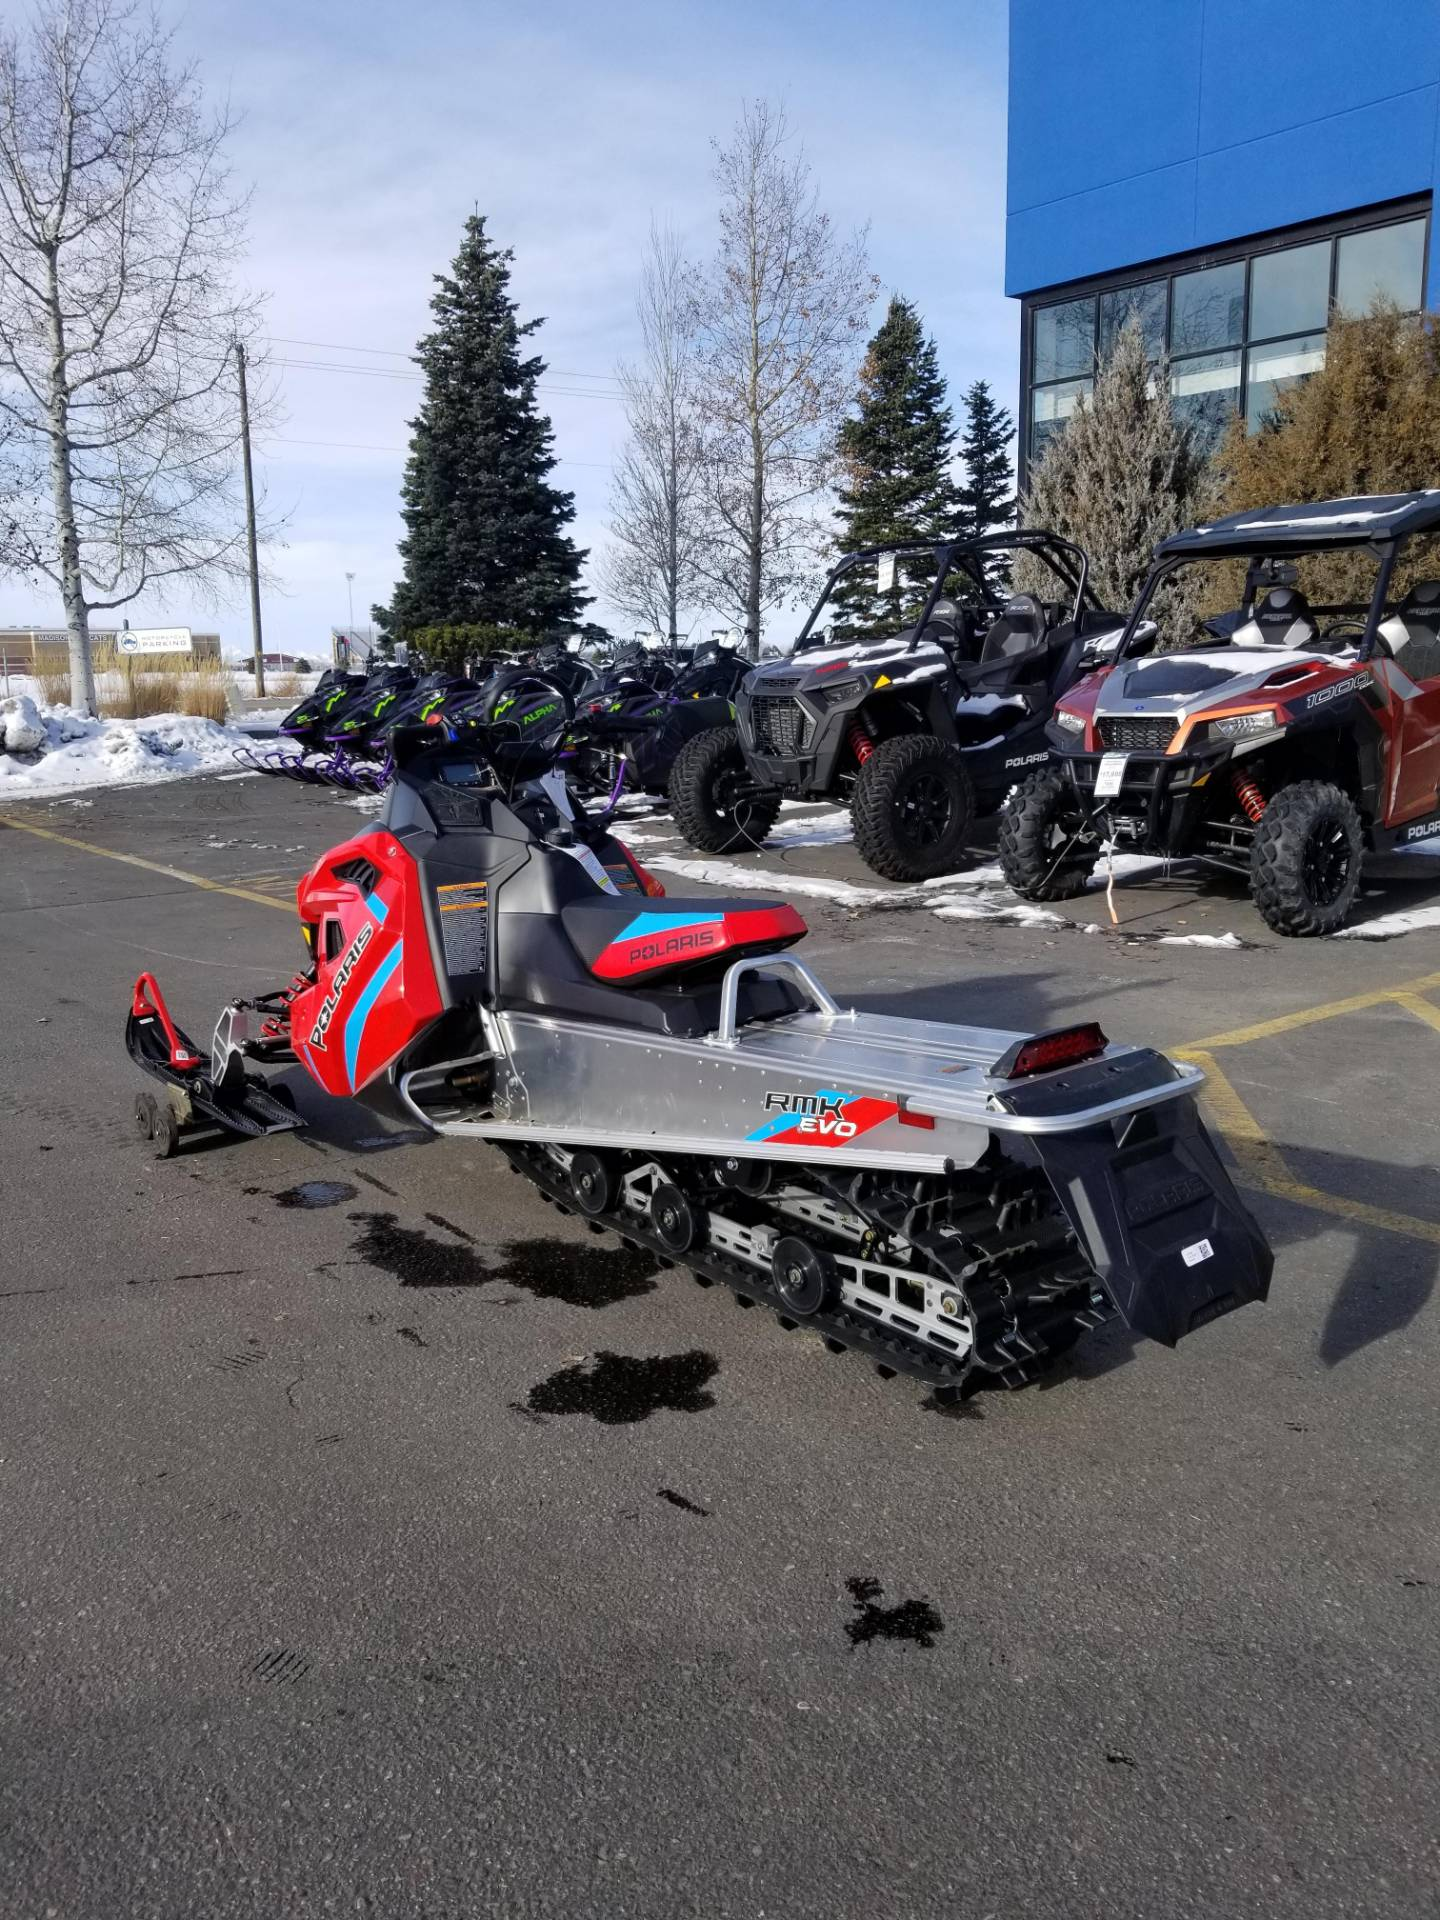 2020 Polaris 550 RMK EVO 144 ES in Rexburg, Idaho - Photo 10